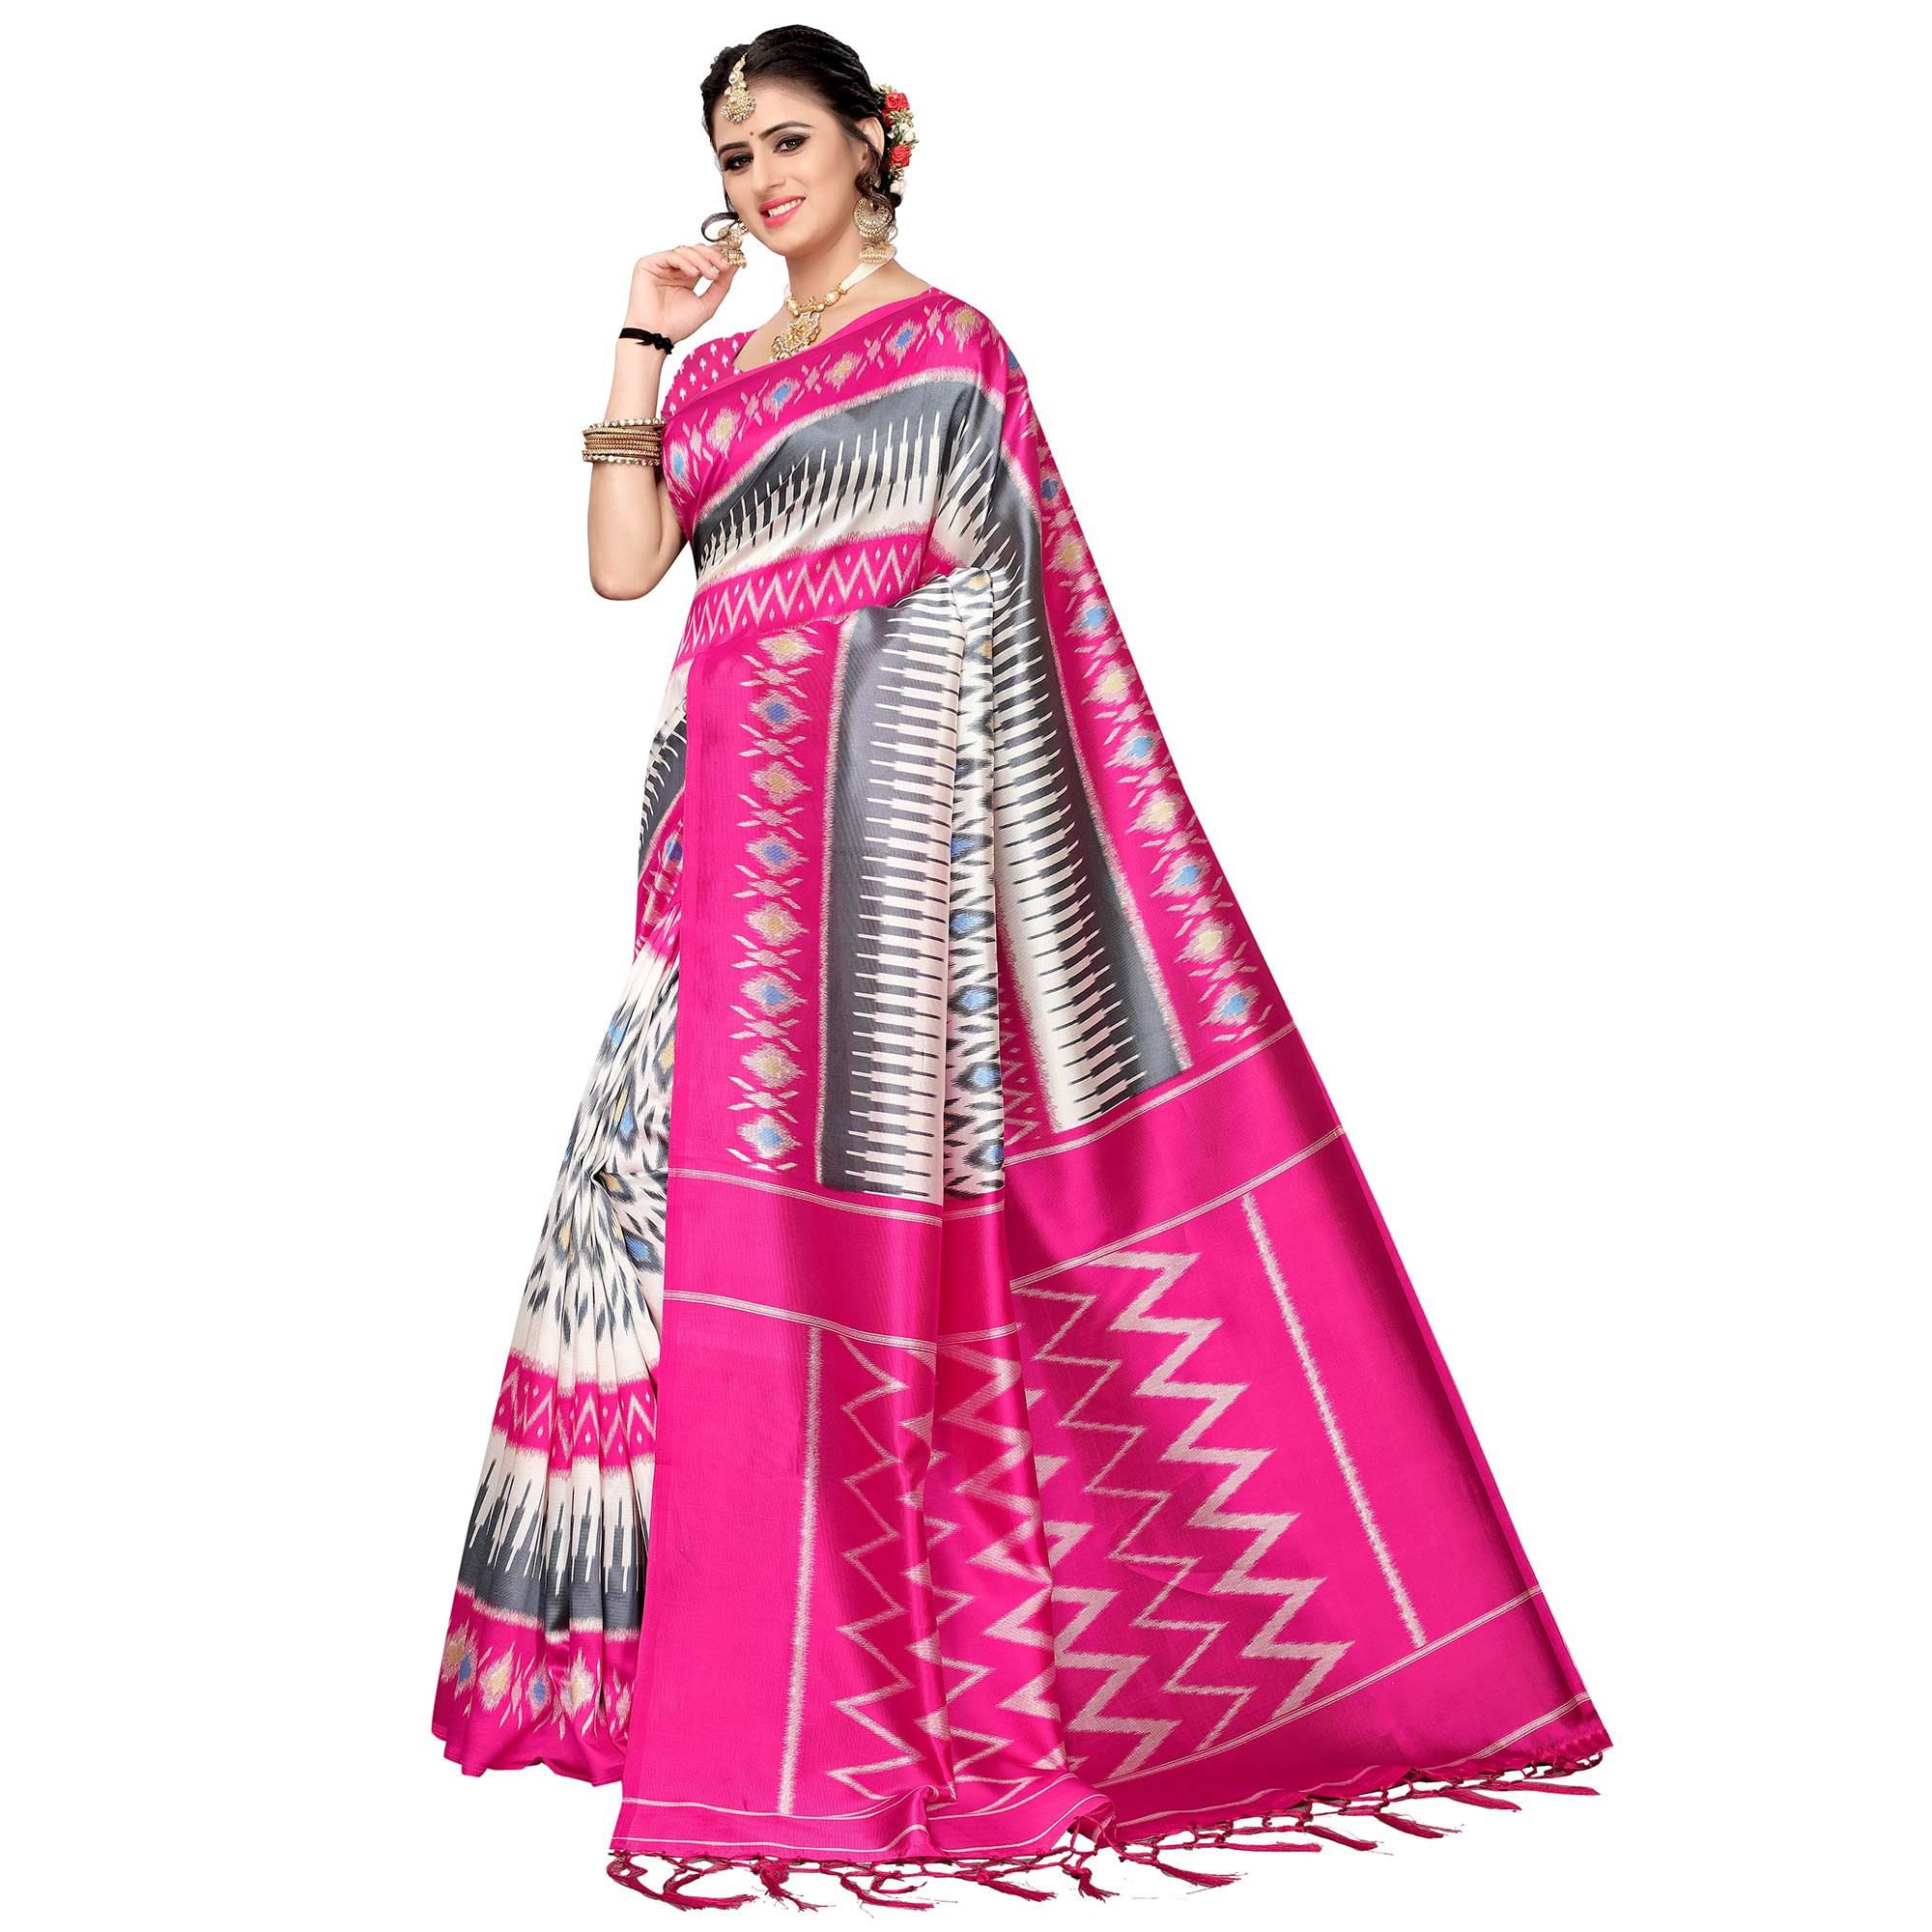 Imposing White-Pink Colored Festive Wear Art Silk Saree